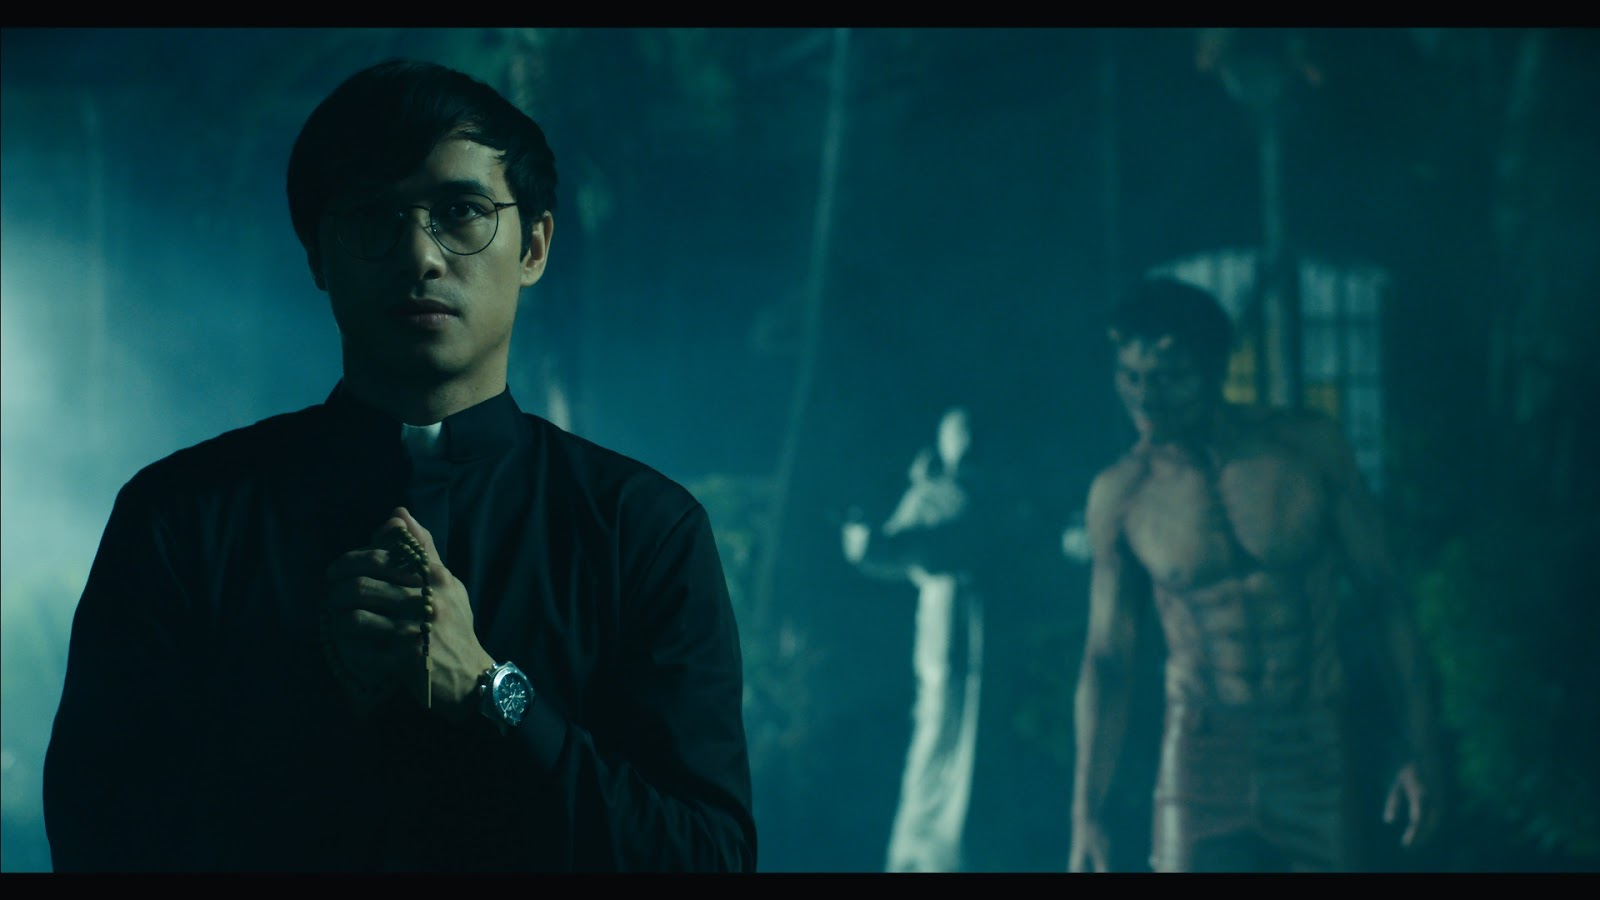 Kean Cipriano in hair pulling battle with devil in Echorsis